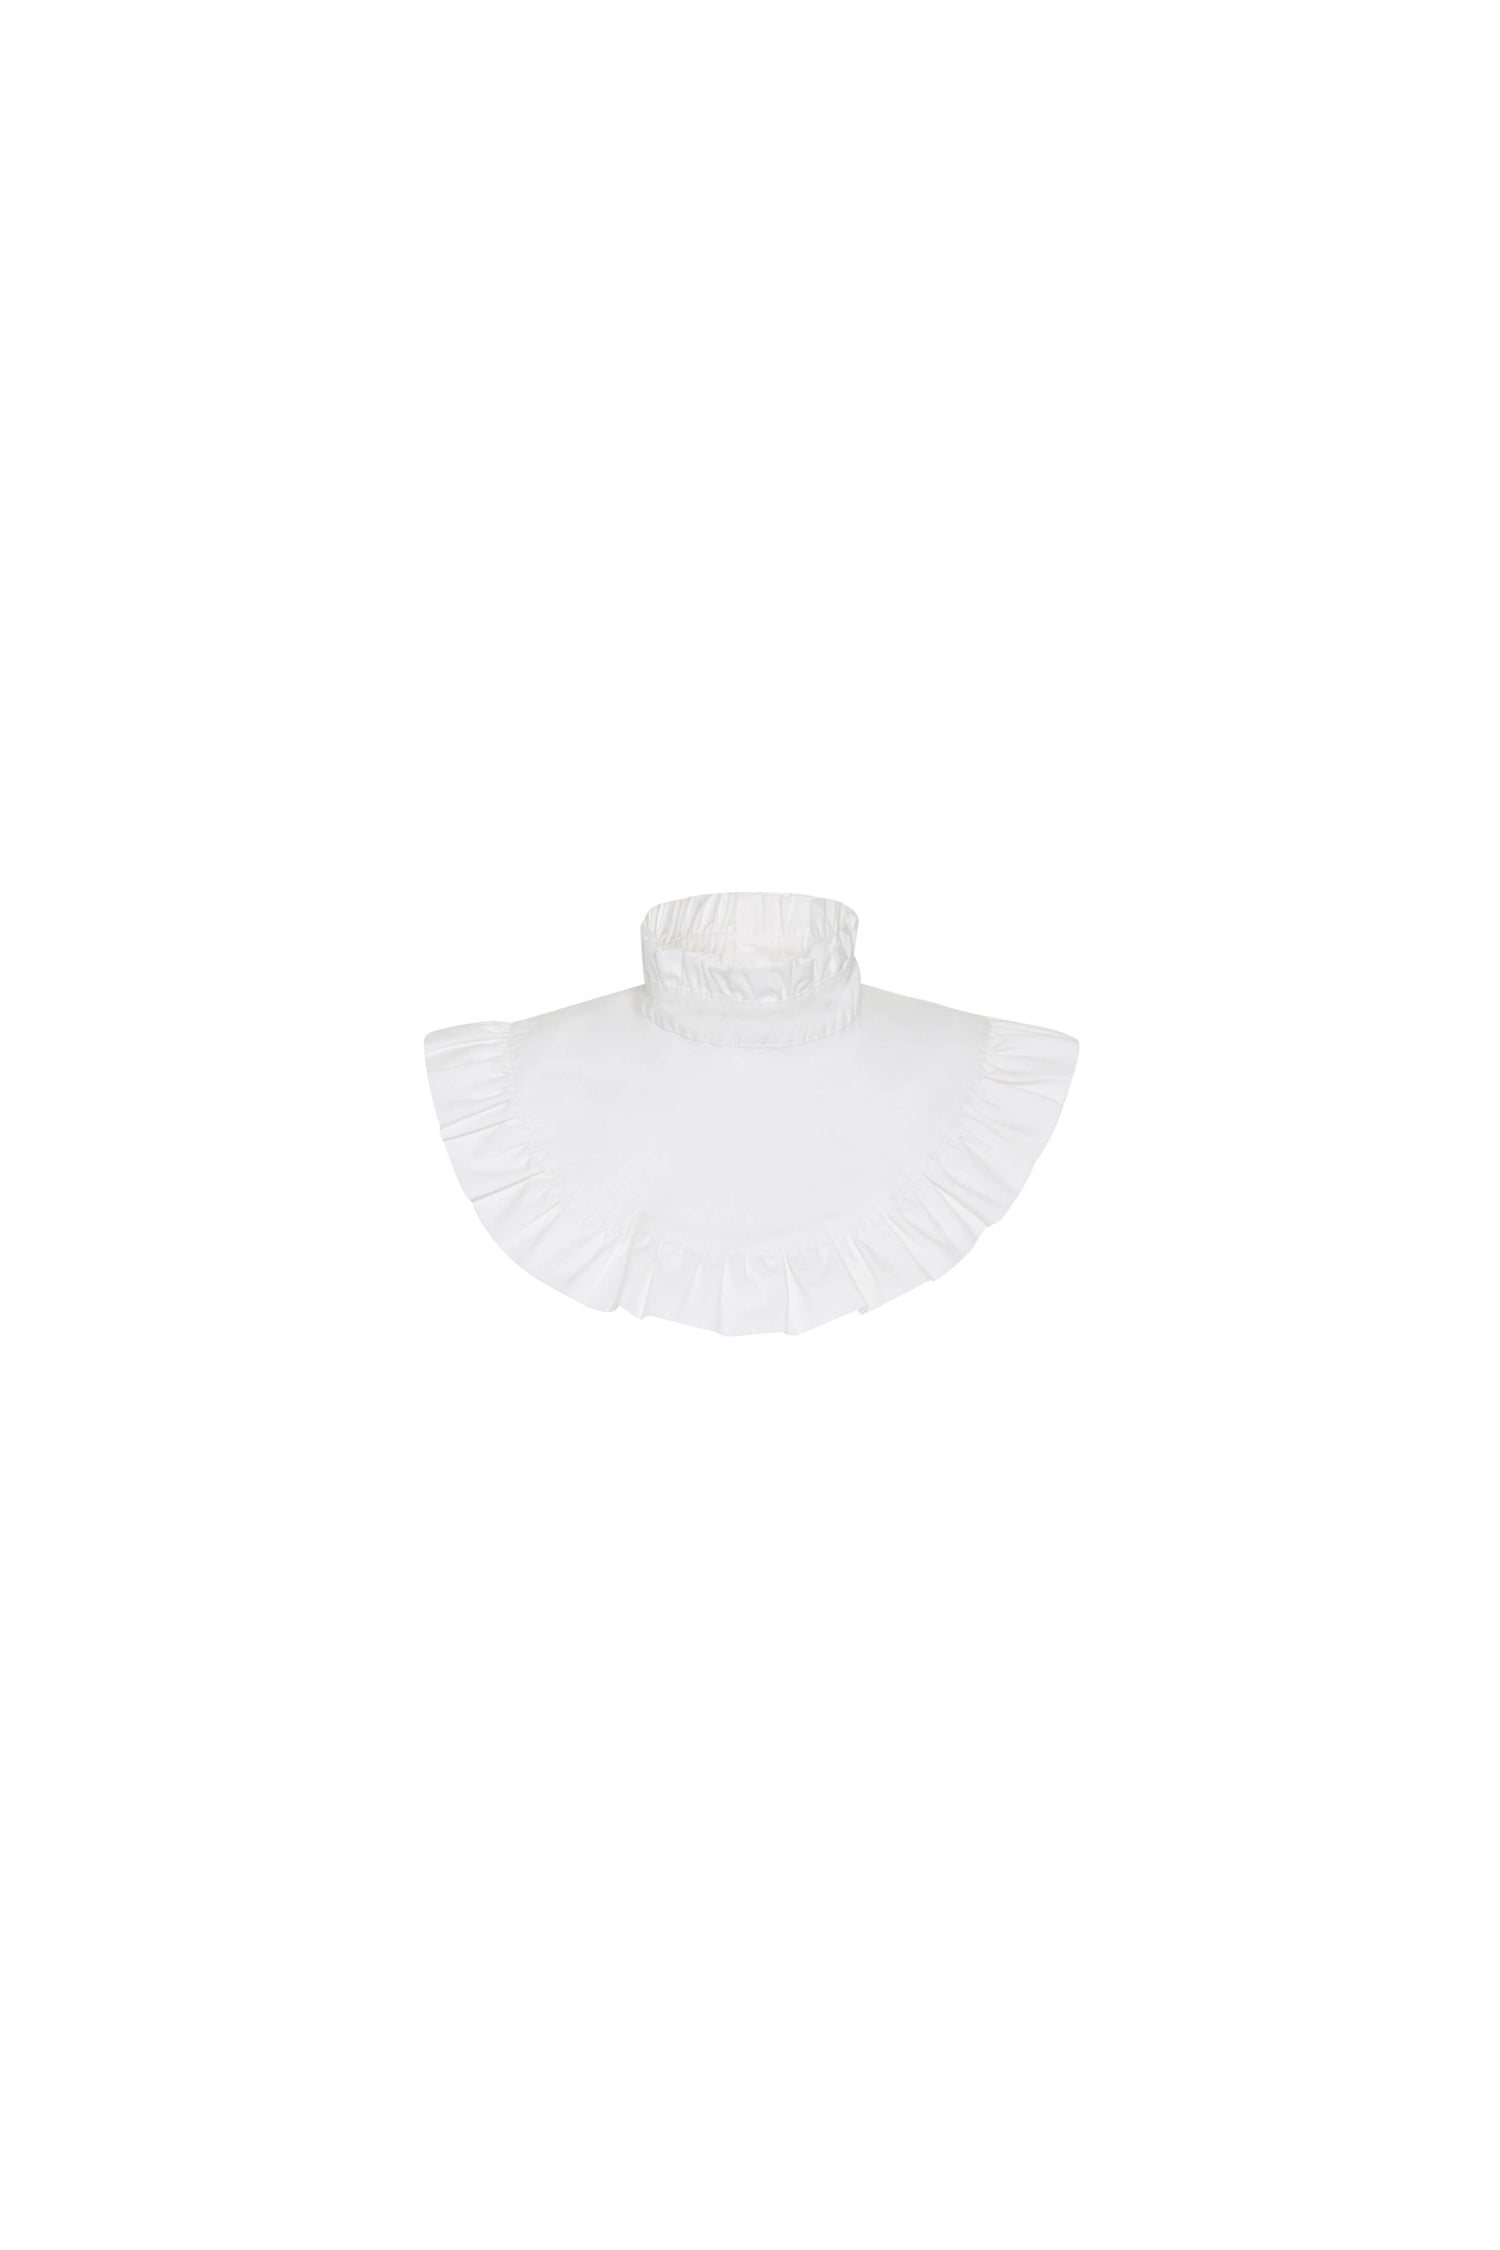 Alice Ruffle White Collar